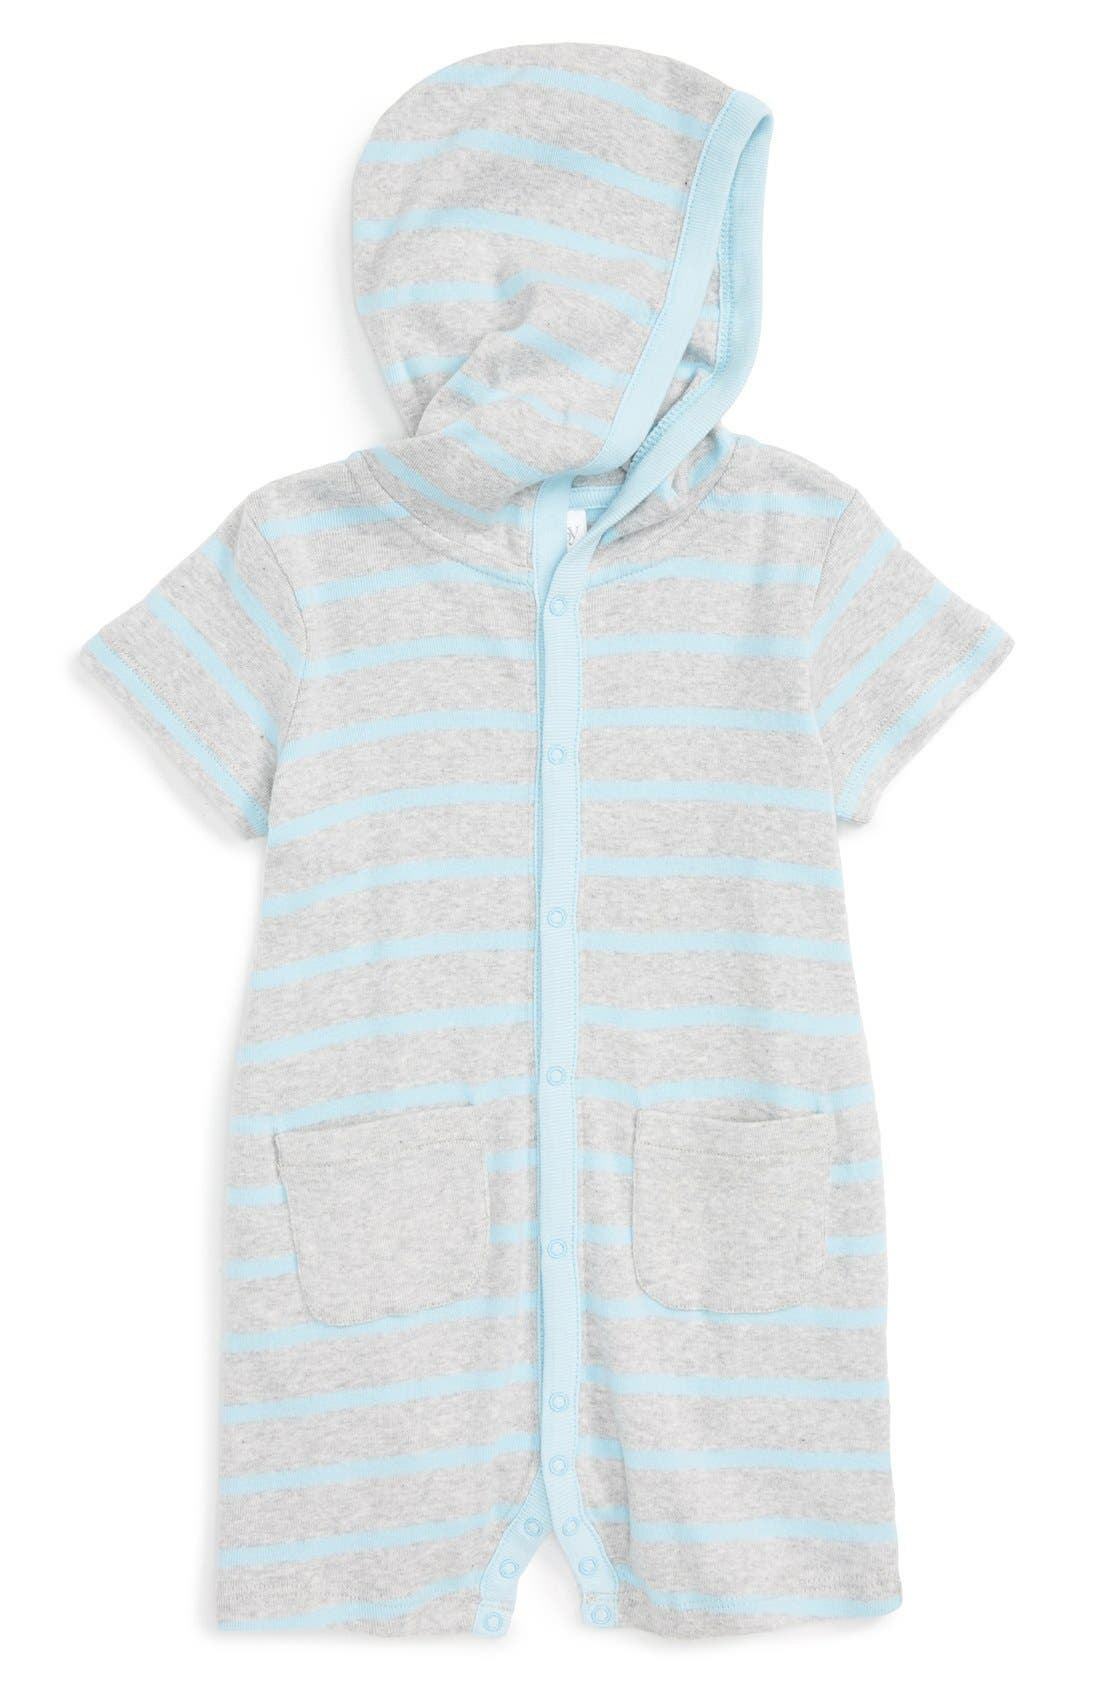 Stripe Hooded Romper,                         Main,                         color, Blue Sky Breton